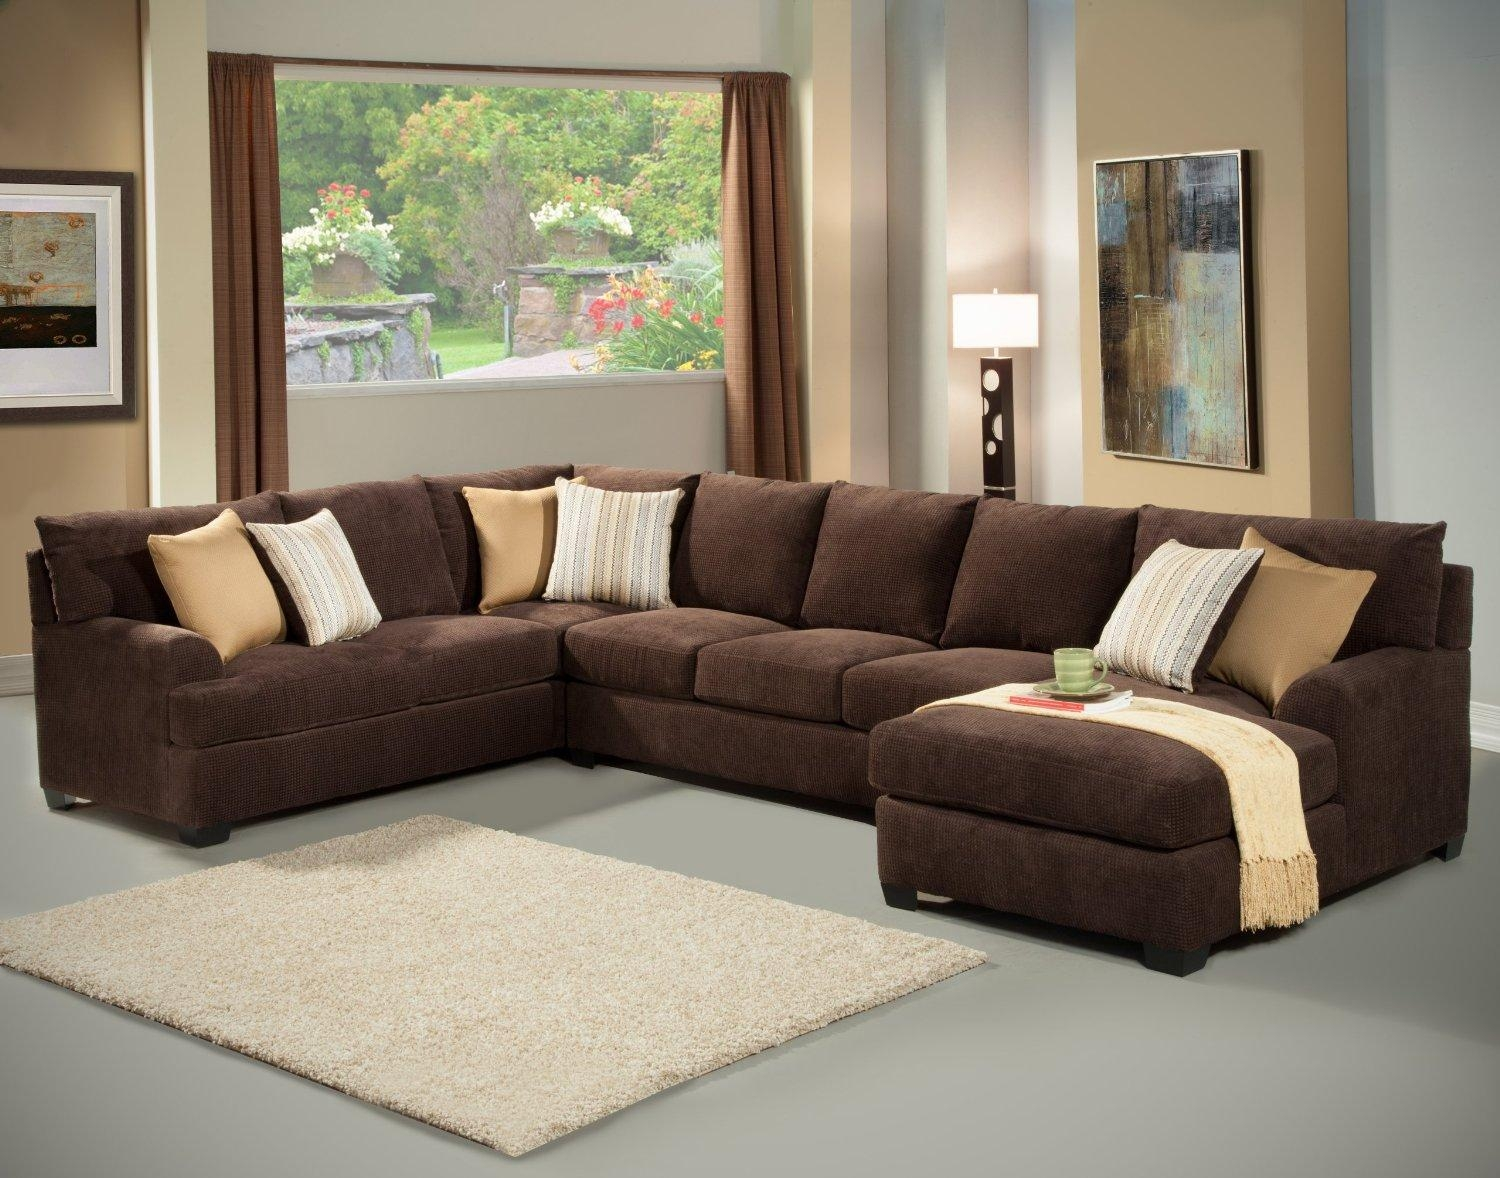 Brown Sectional Sofa With Chaise With Bradley Sectional Sofas (Image 14 of 20)